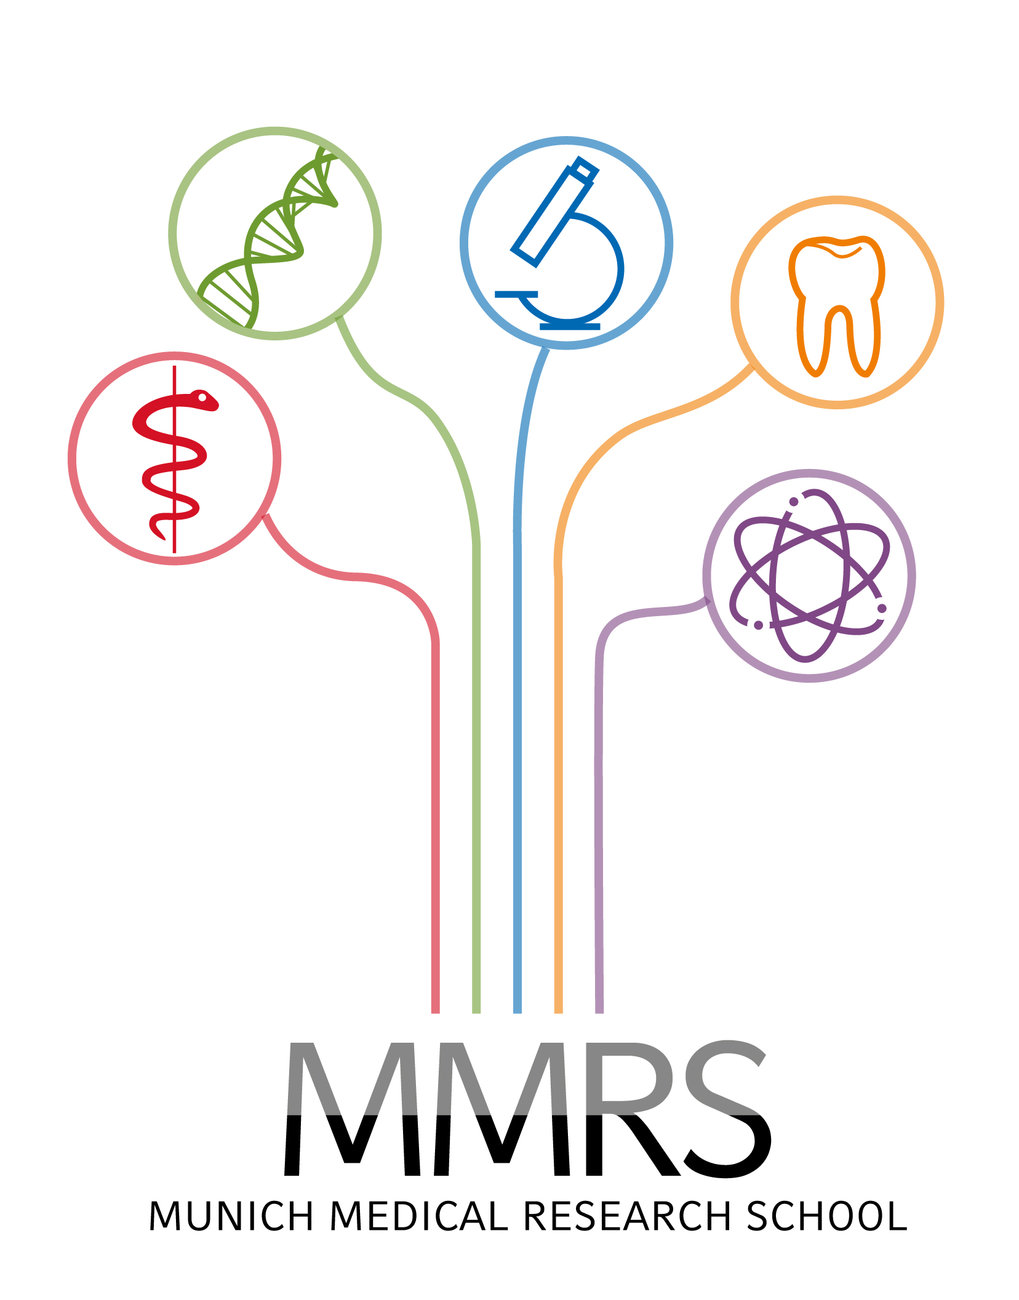 The Munich Medical Research School (MMRS)